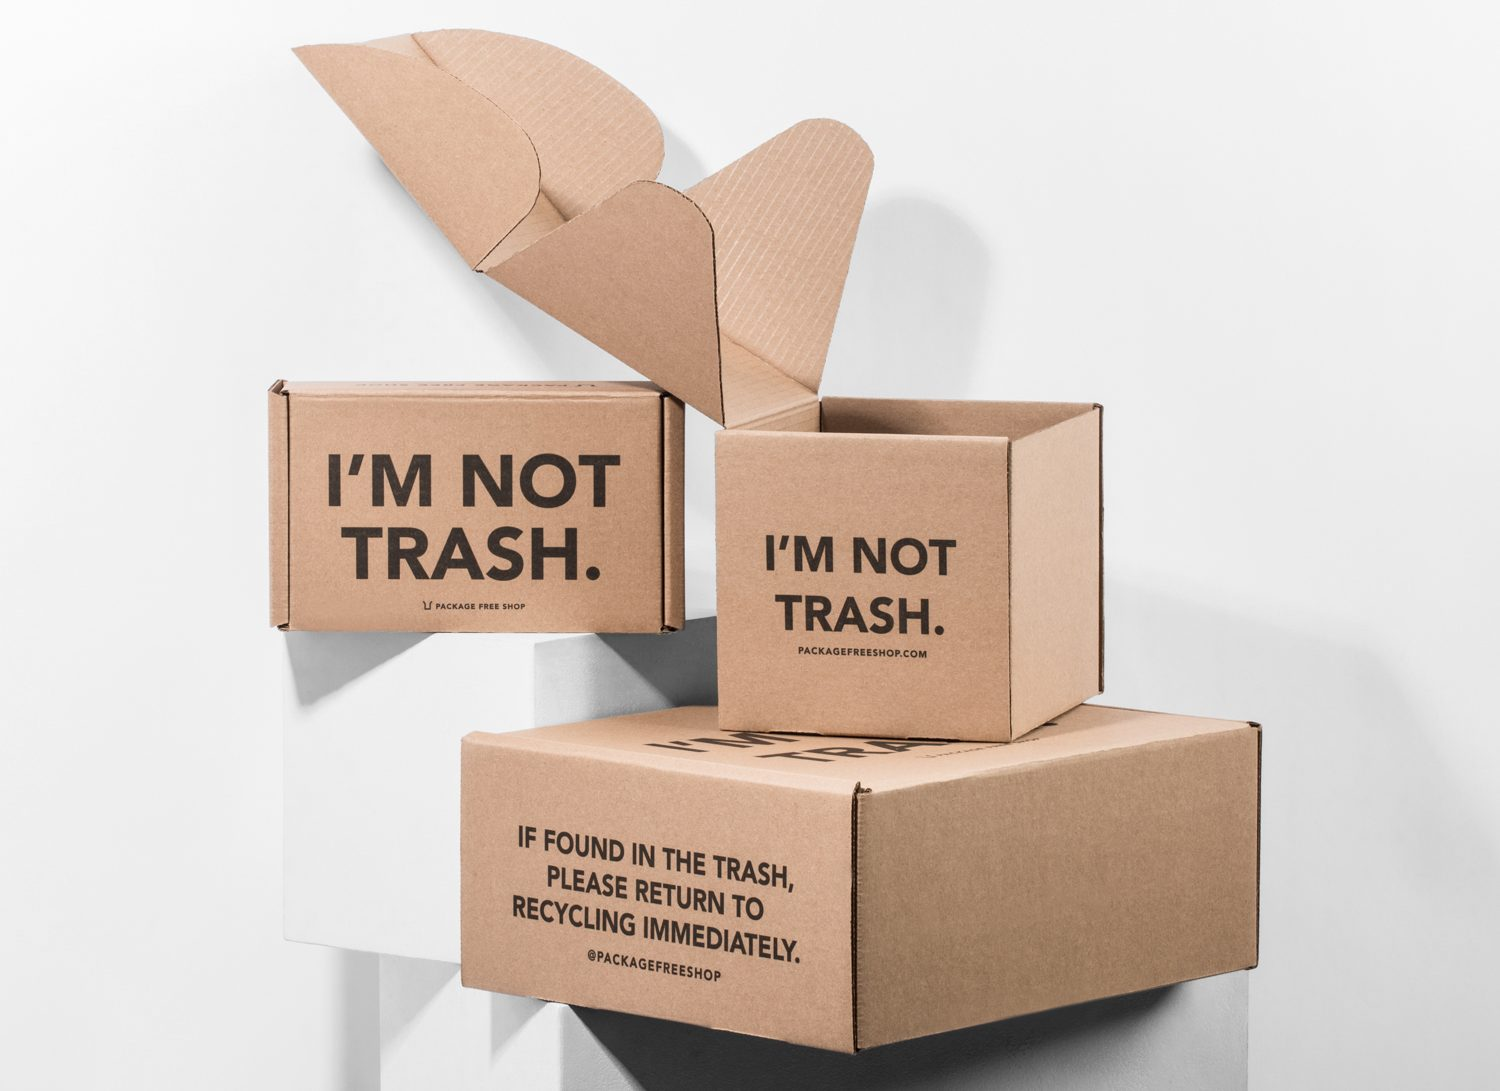 Sustainable packaging from Lumi - Im Not Trash